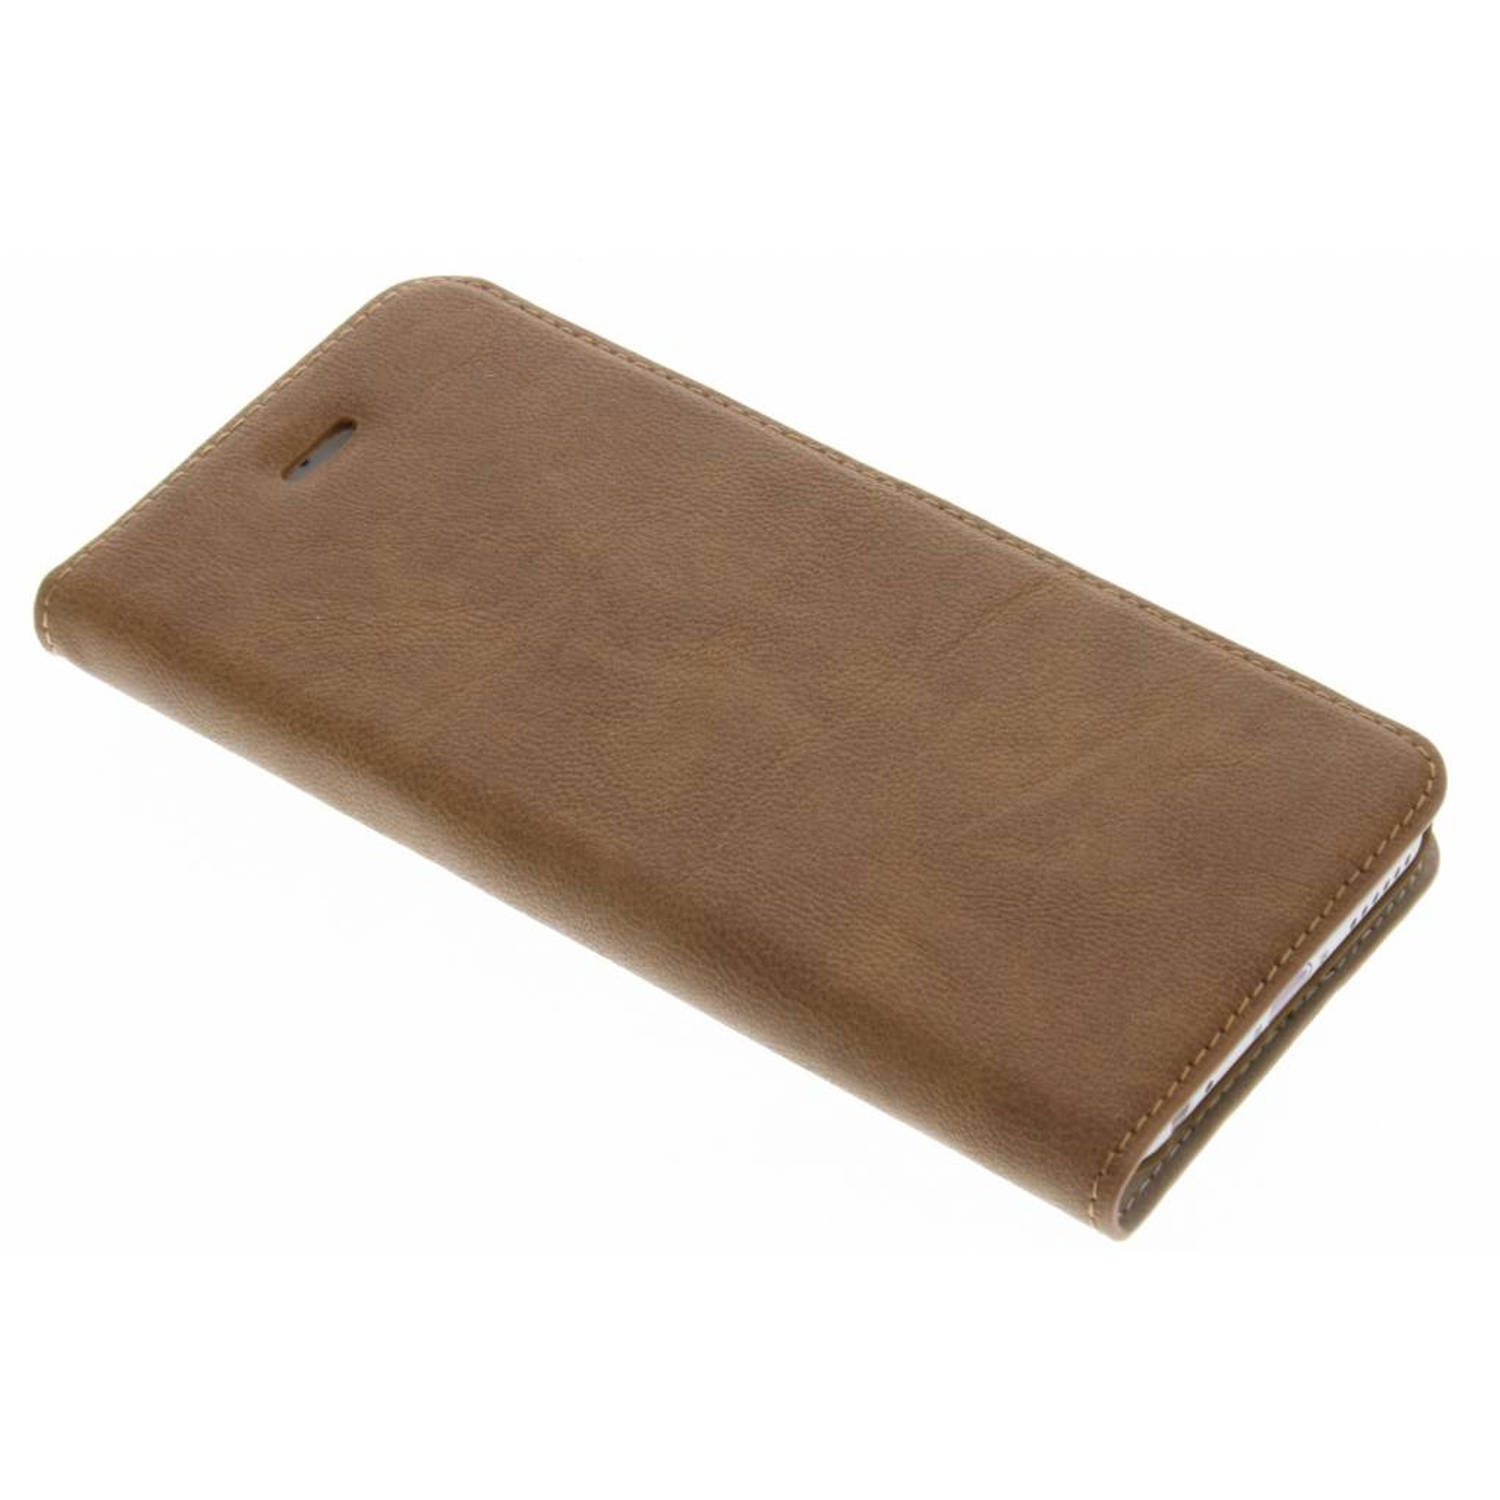 Guard Booklet Case voor de iPhone 6 / 6s - Bruin